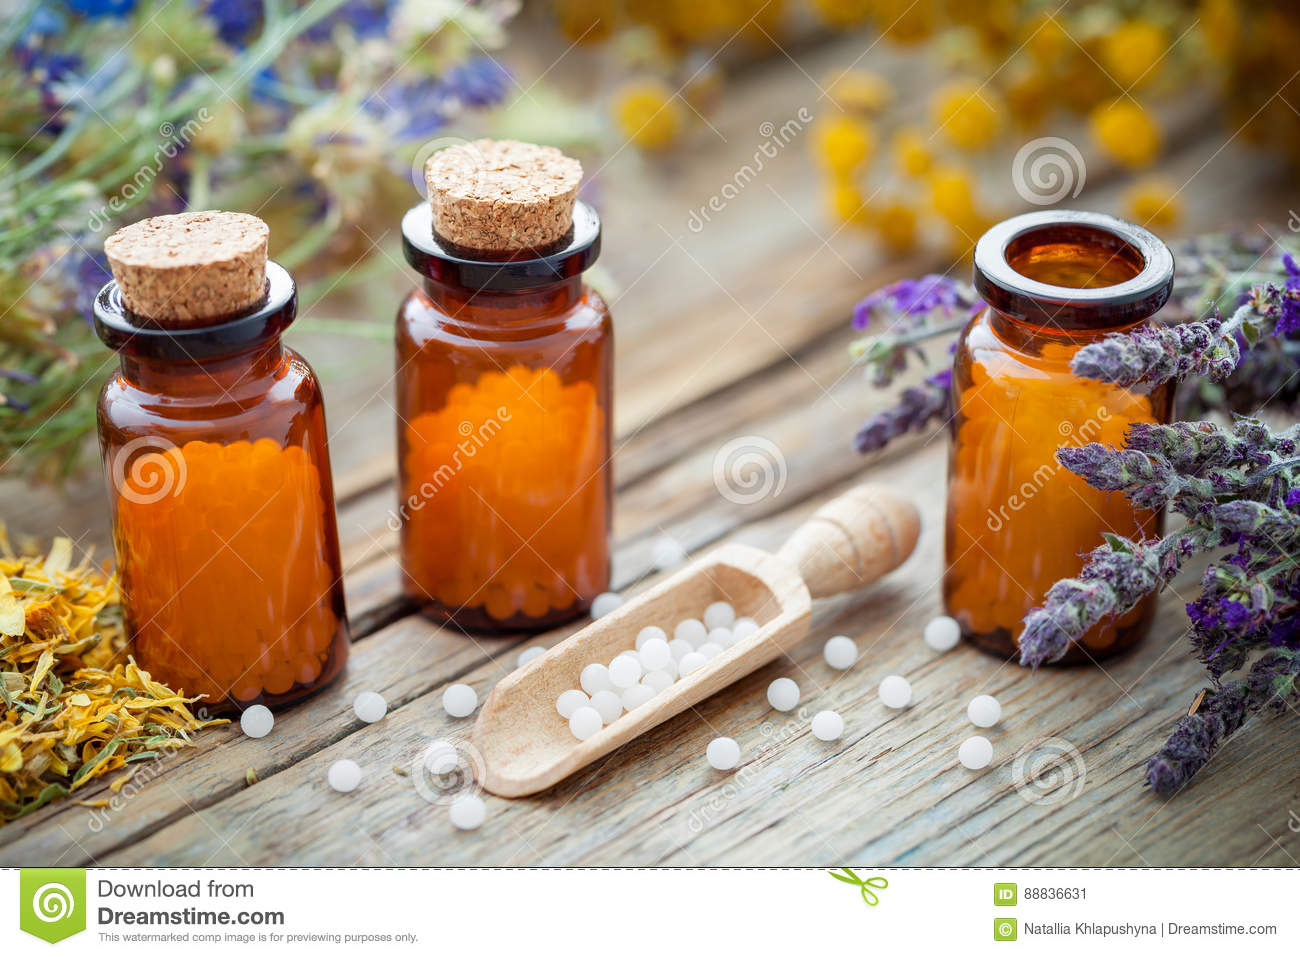 Bottles of homeopathic globules and healing herbs. Homeopathy medicine.